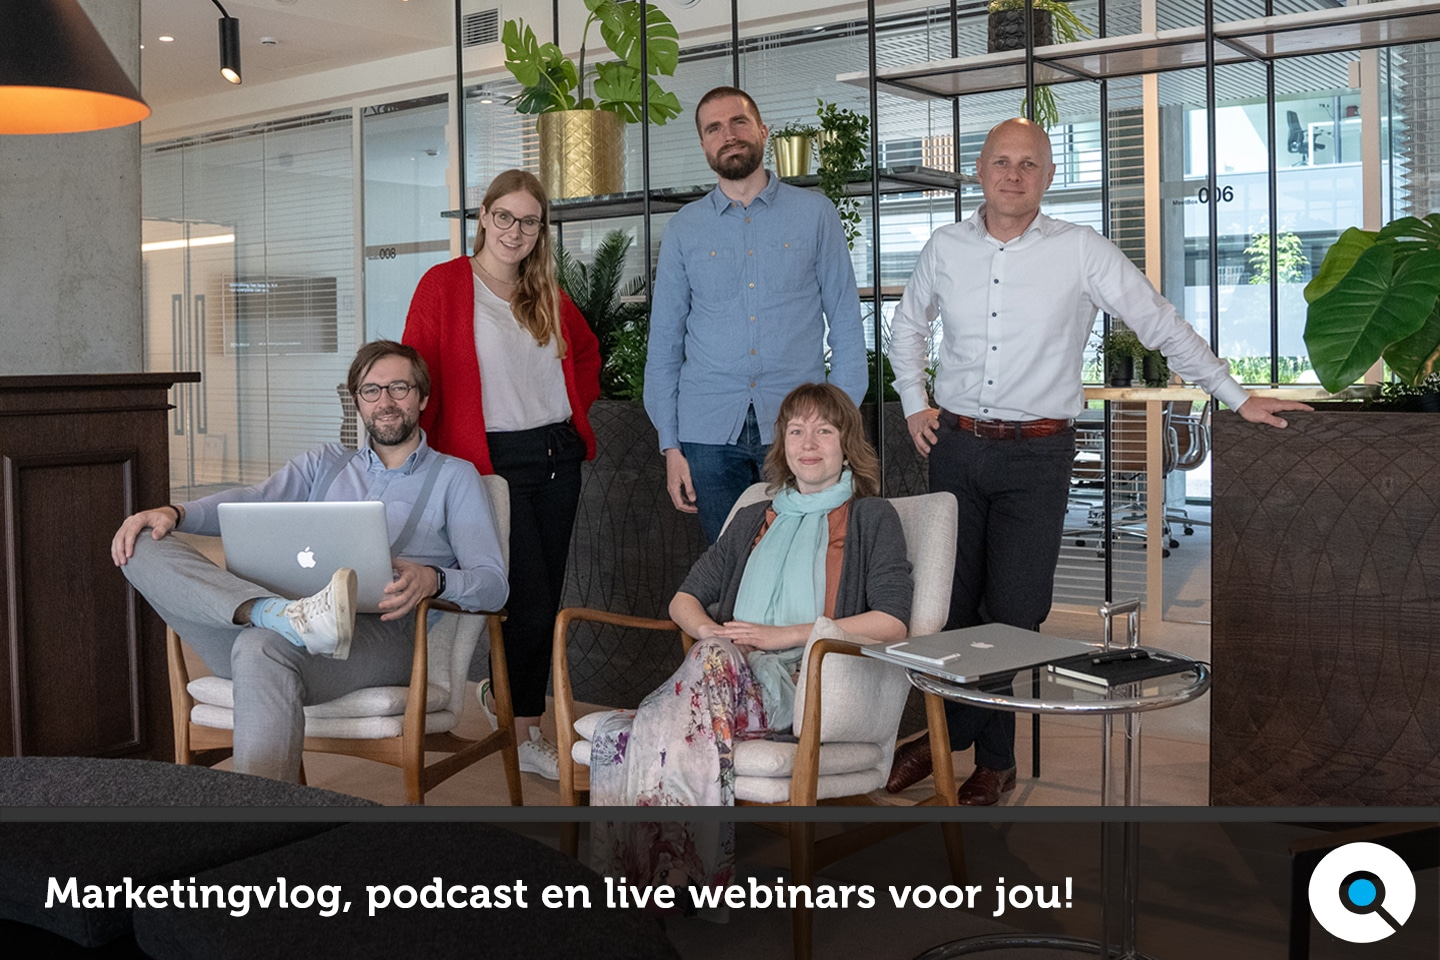 Lincelot start een marketingvlog, marketingpodcast, live webinars